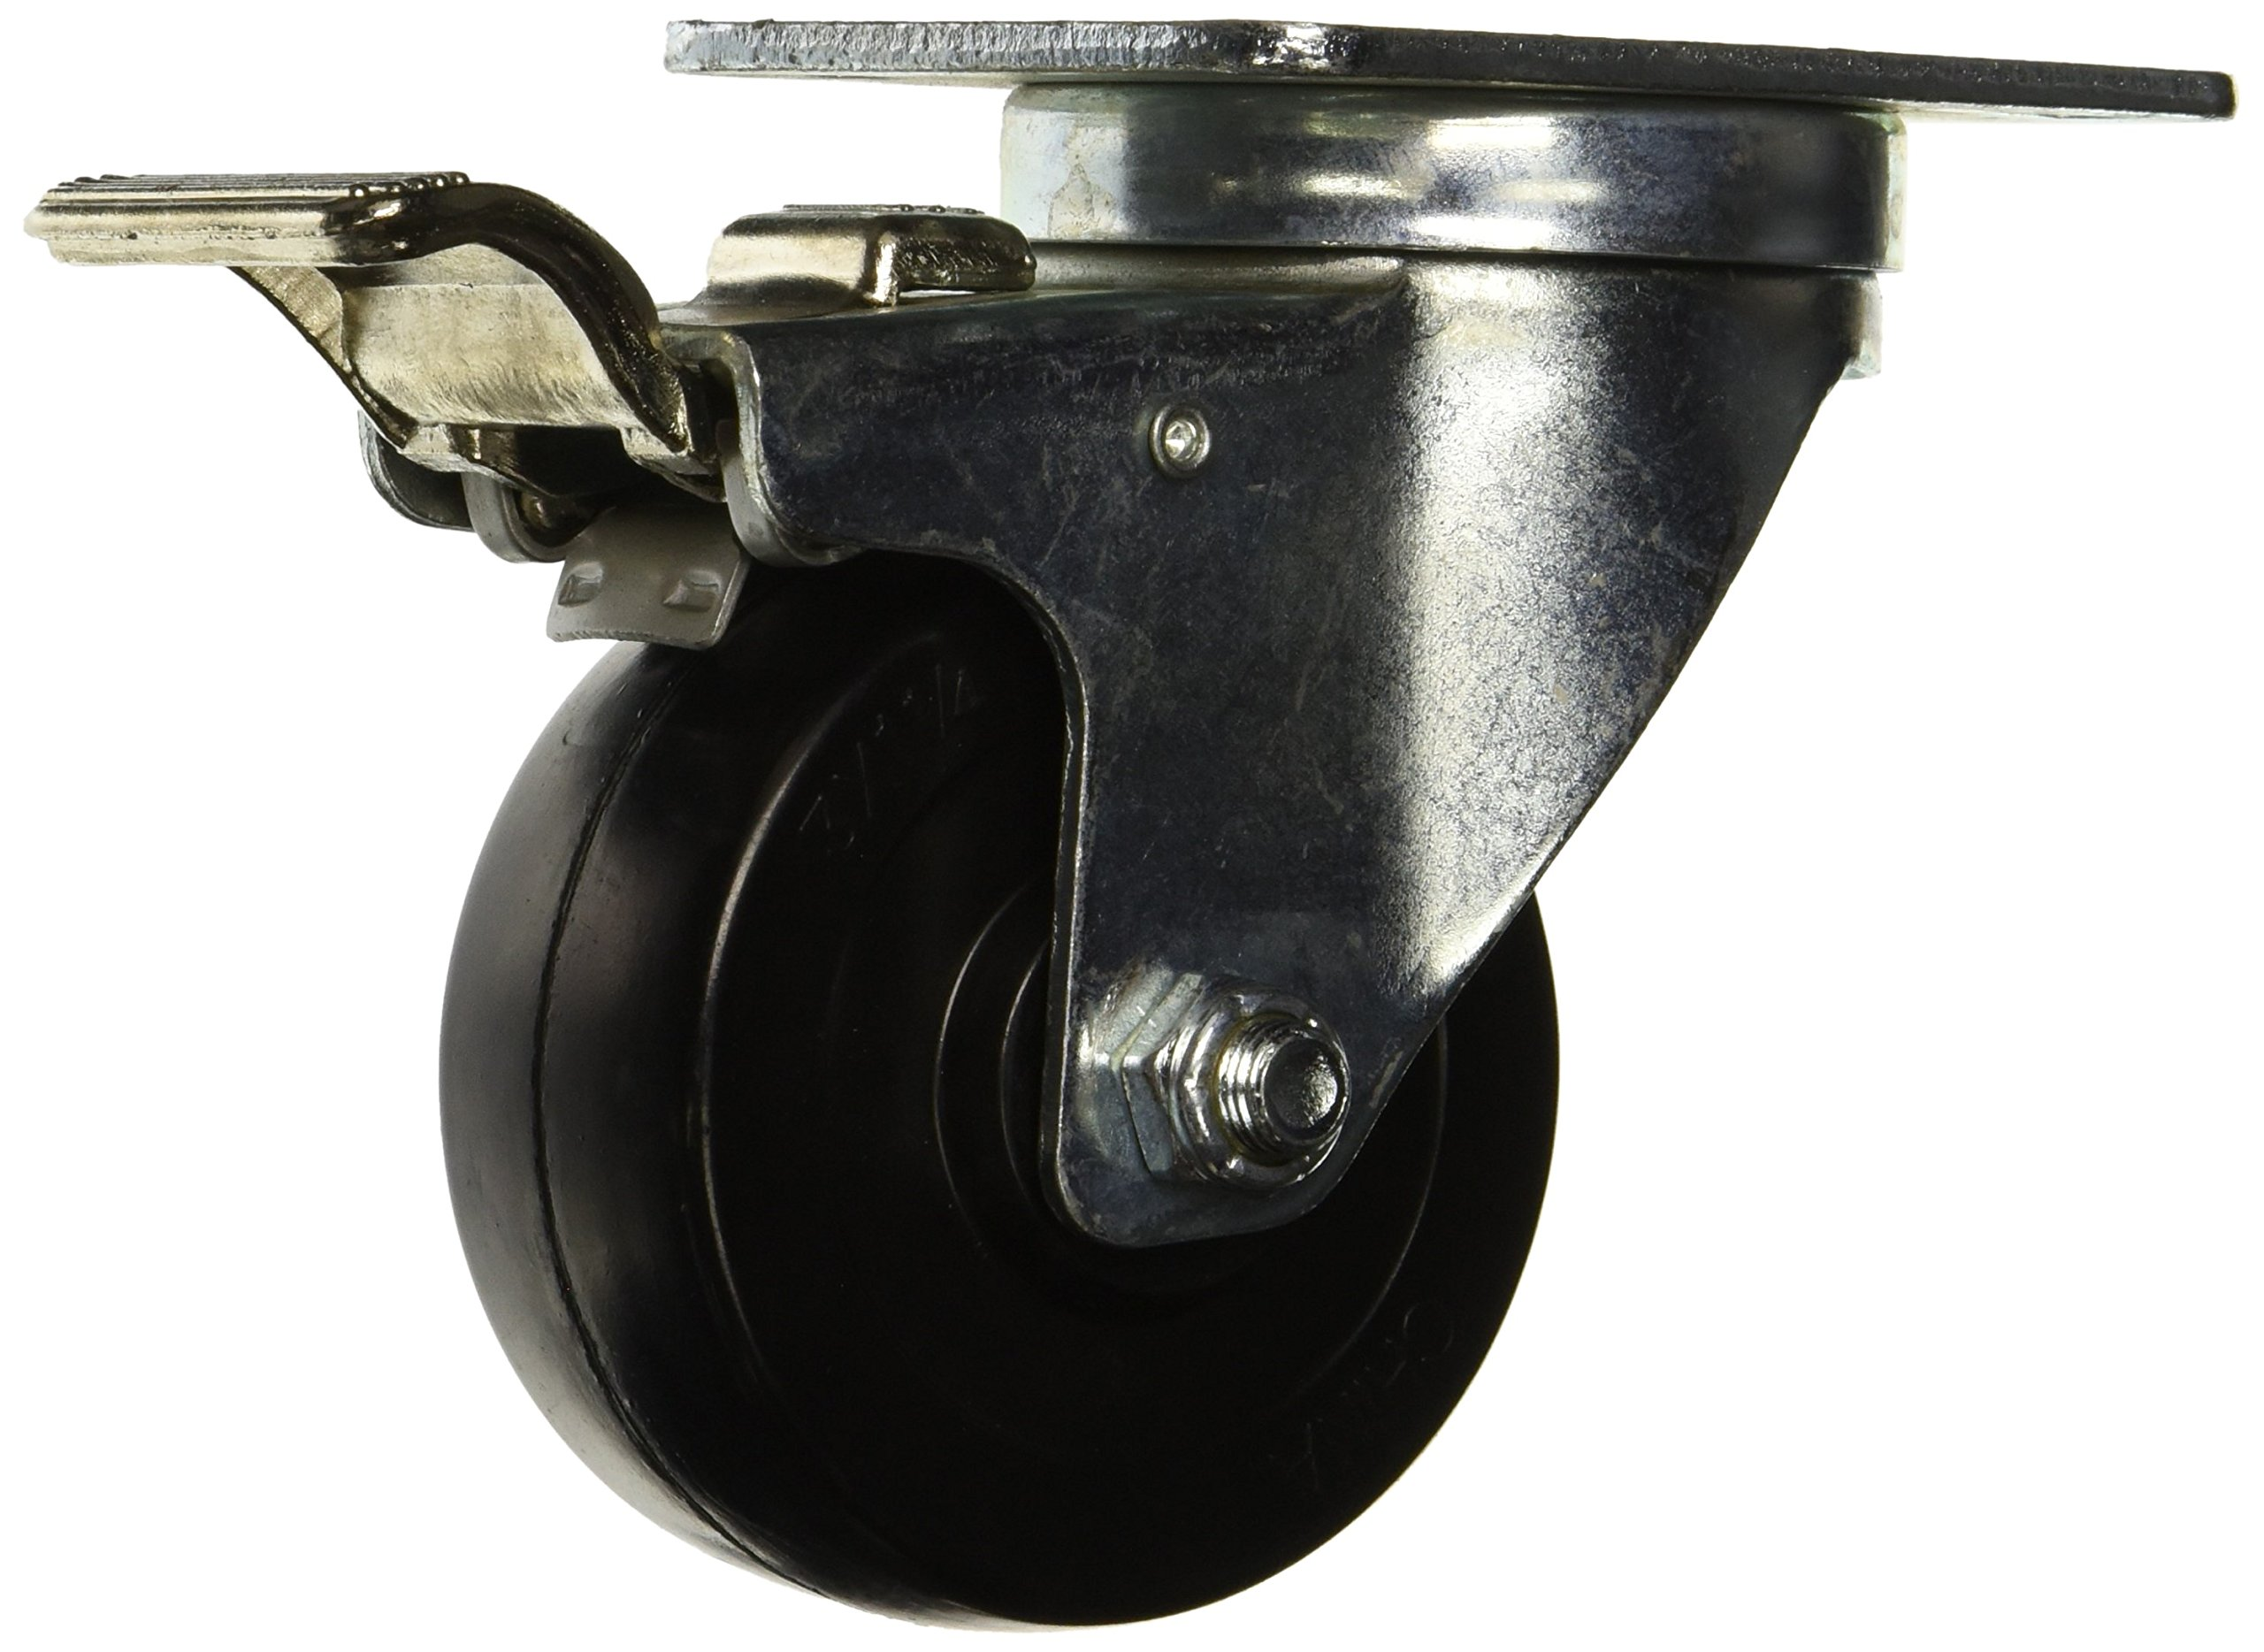 RWM Casters 27-HRO-0312-S-TLB 27 Series Versatrac 4-1/4'' High, 3'' Hard Rubber Wheel, Swivel Caster, Total Lock Brake by RWM Casters